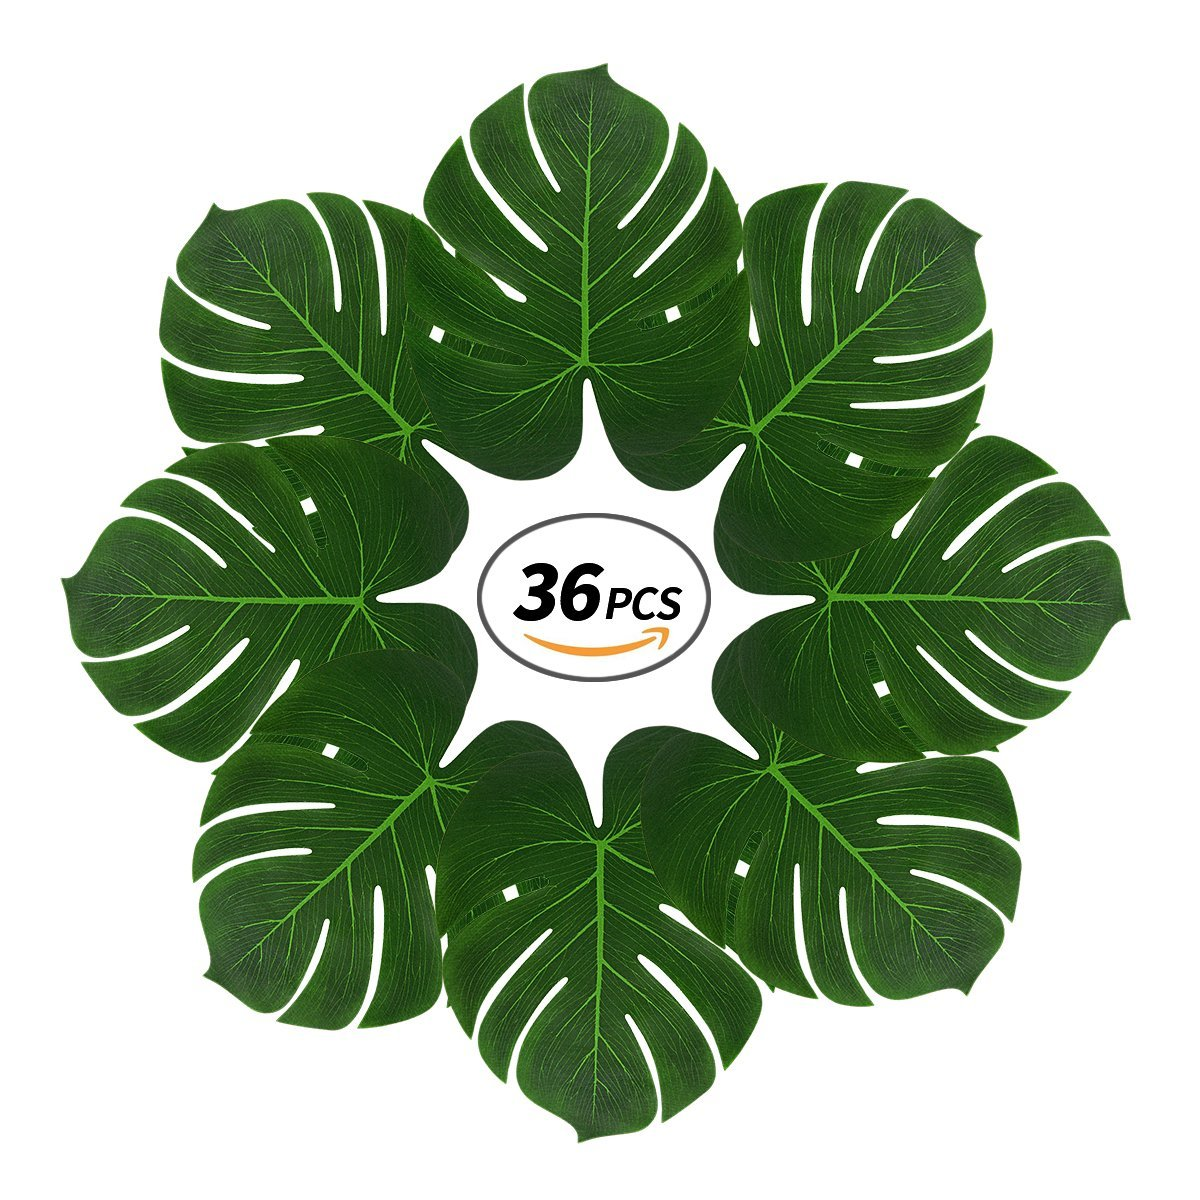 Tropical Palm Leaves with 2 Sticks,36 Pcs 13'' Reusable Large Fake Leaves for Luau Party,Jungle Themed Party,Havana Nights,Baby Shower Decor